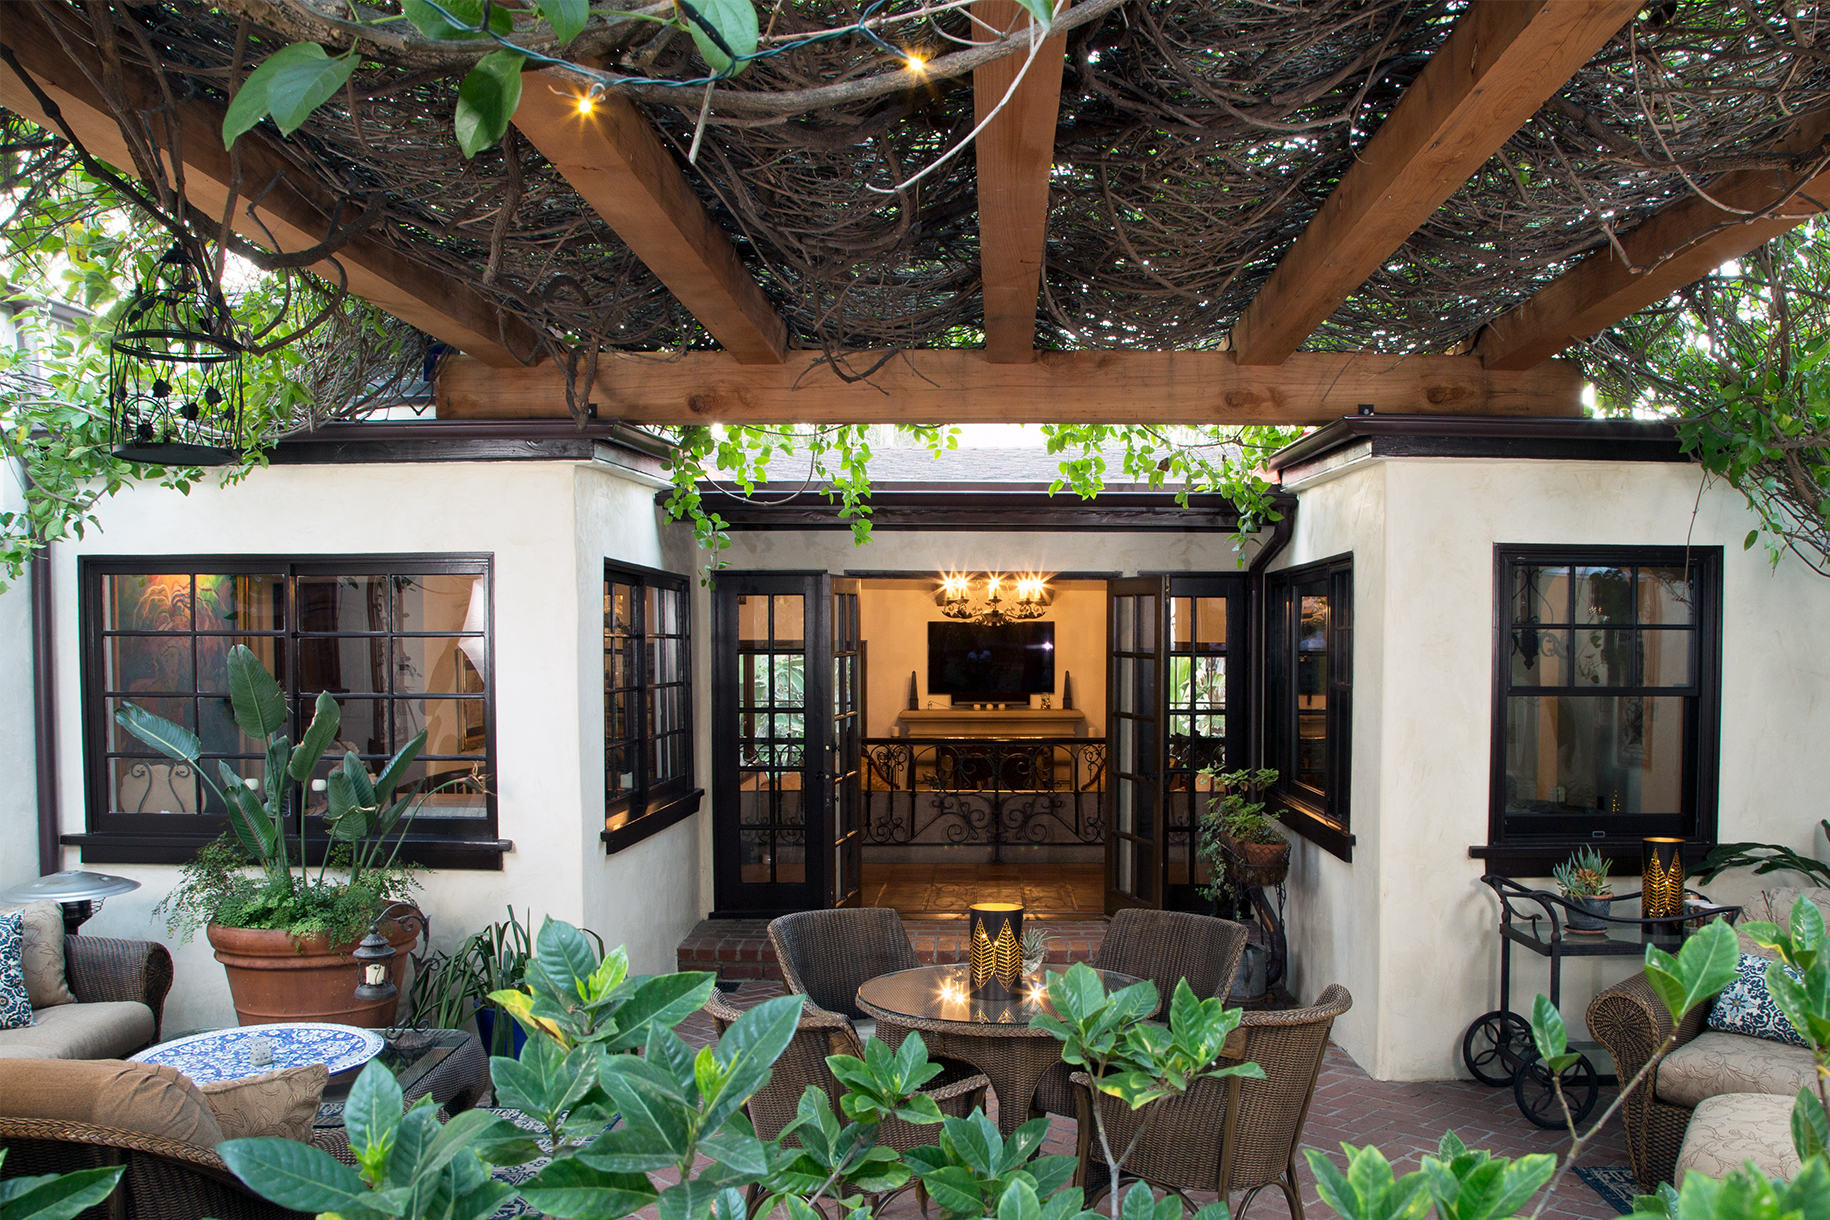 Expansive Redwood Timber Pergola Creates Verdant Courtyard